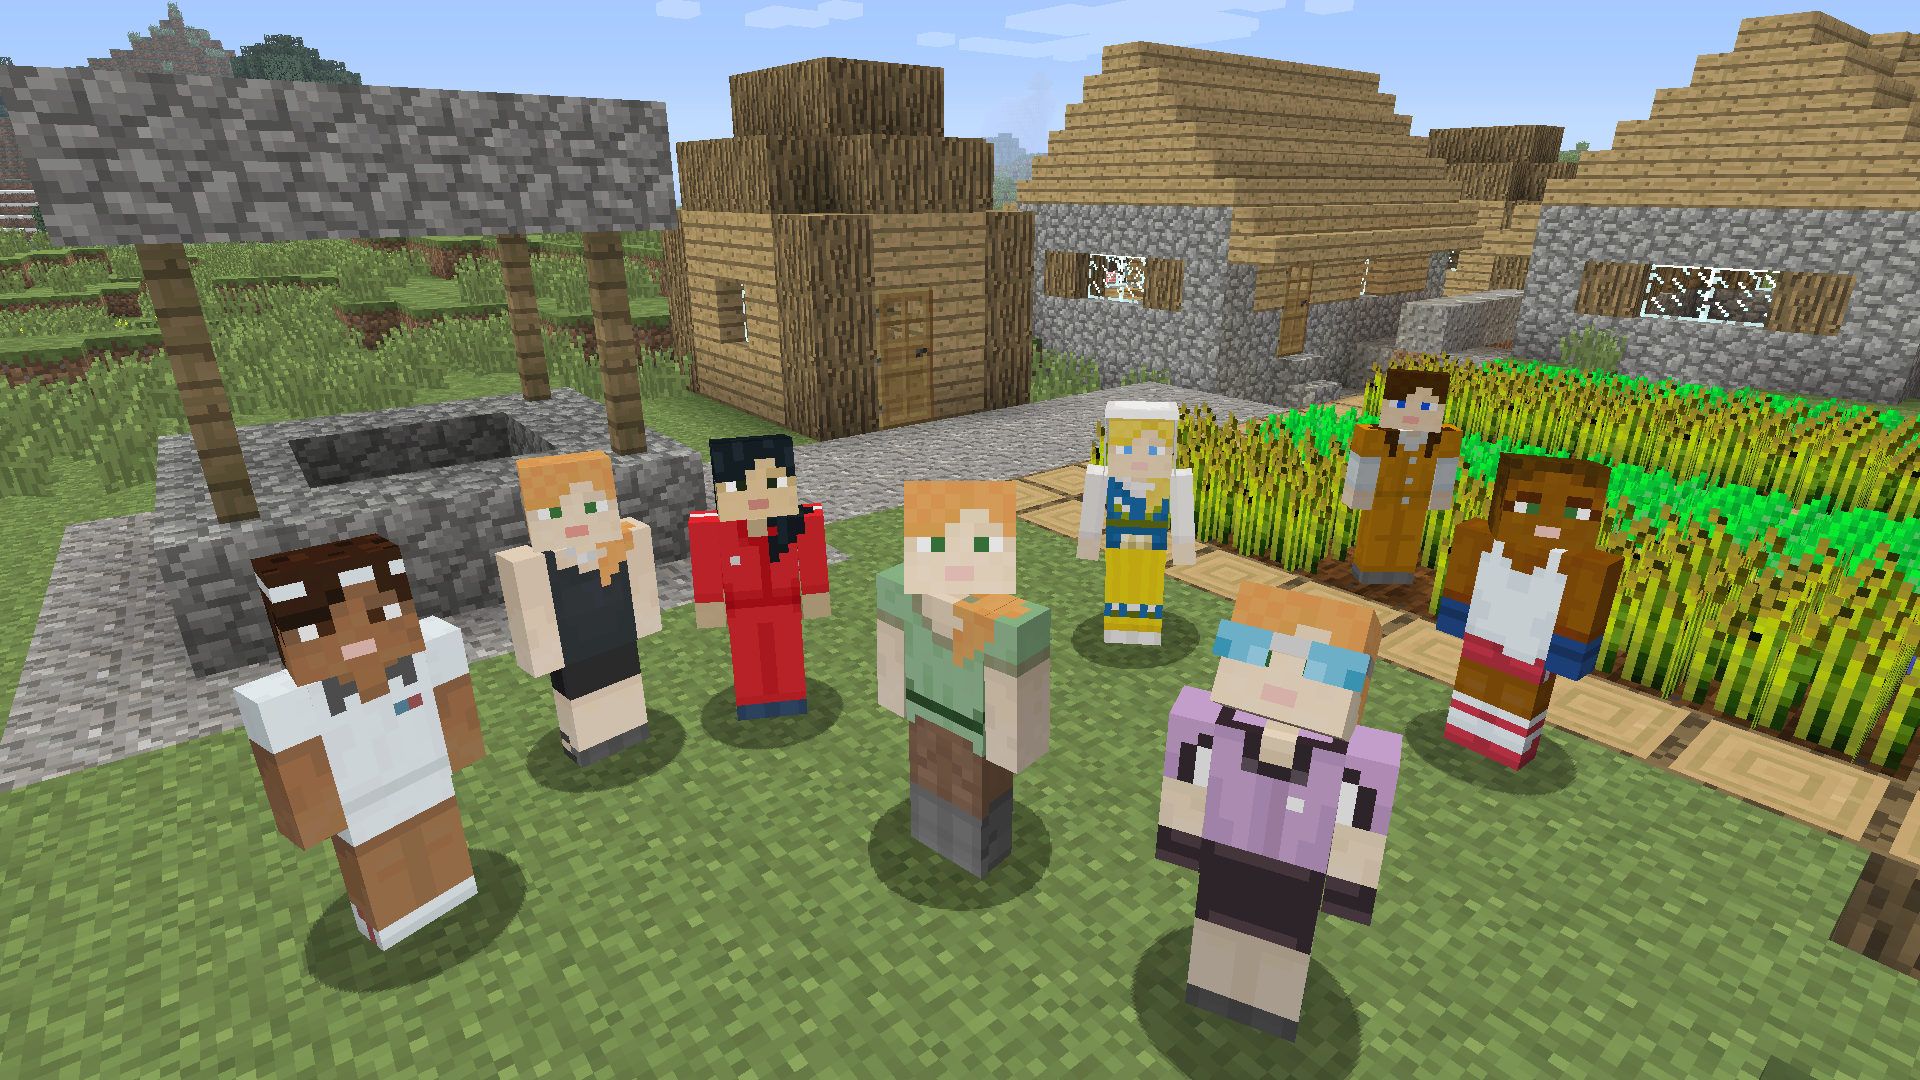 [Update] Minecraft: Battle Minigame lets you easily organize multiplayer sessions, out on June 21st on PSVITA